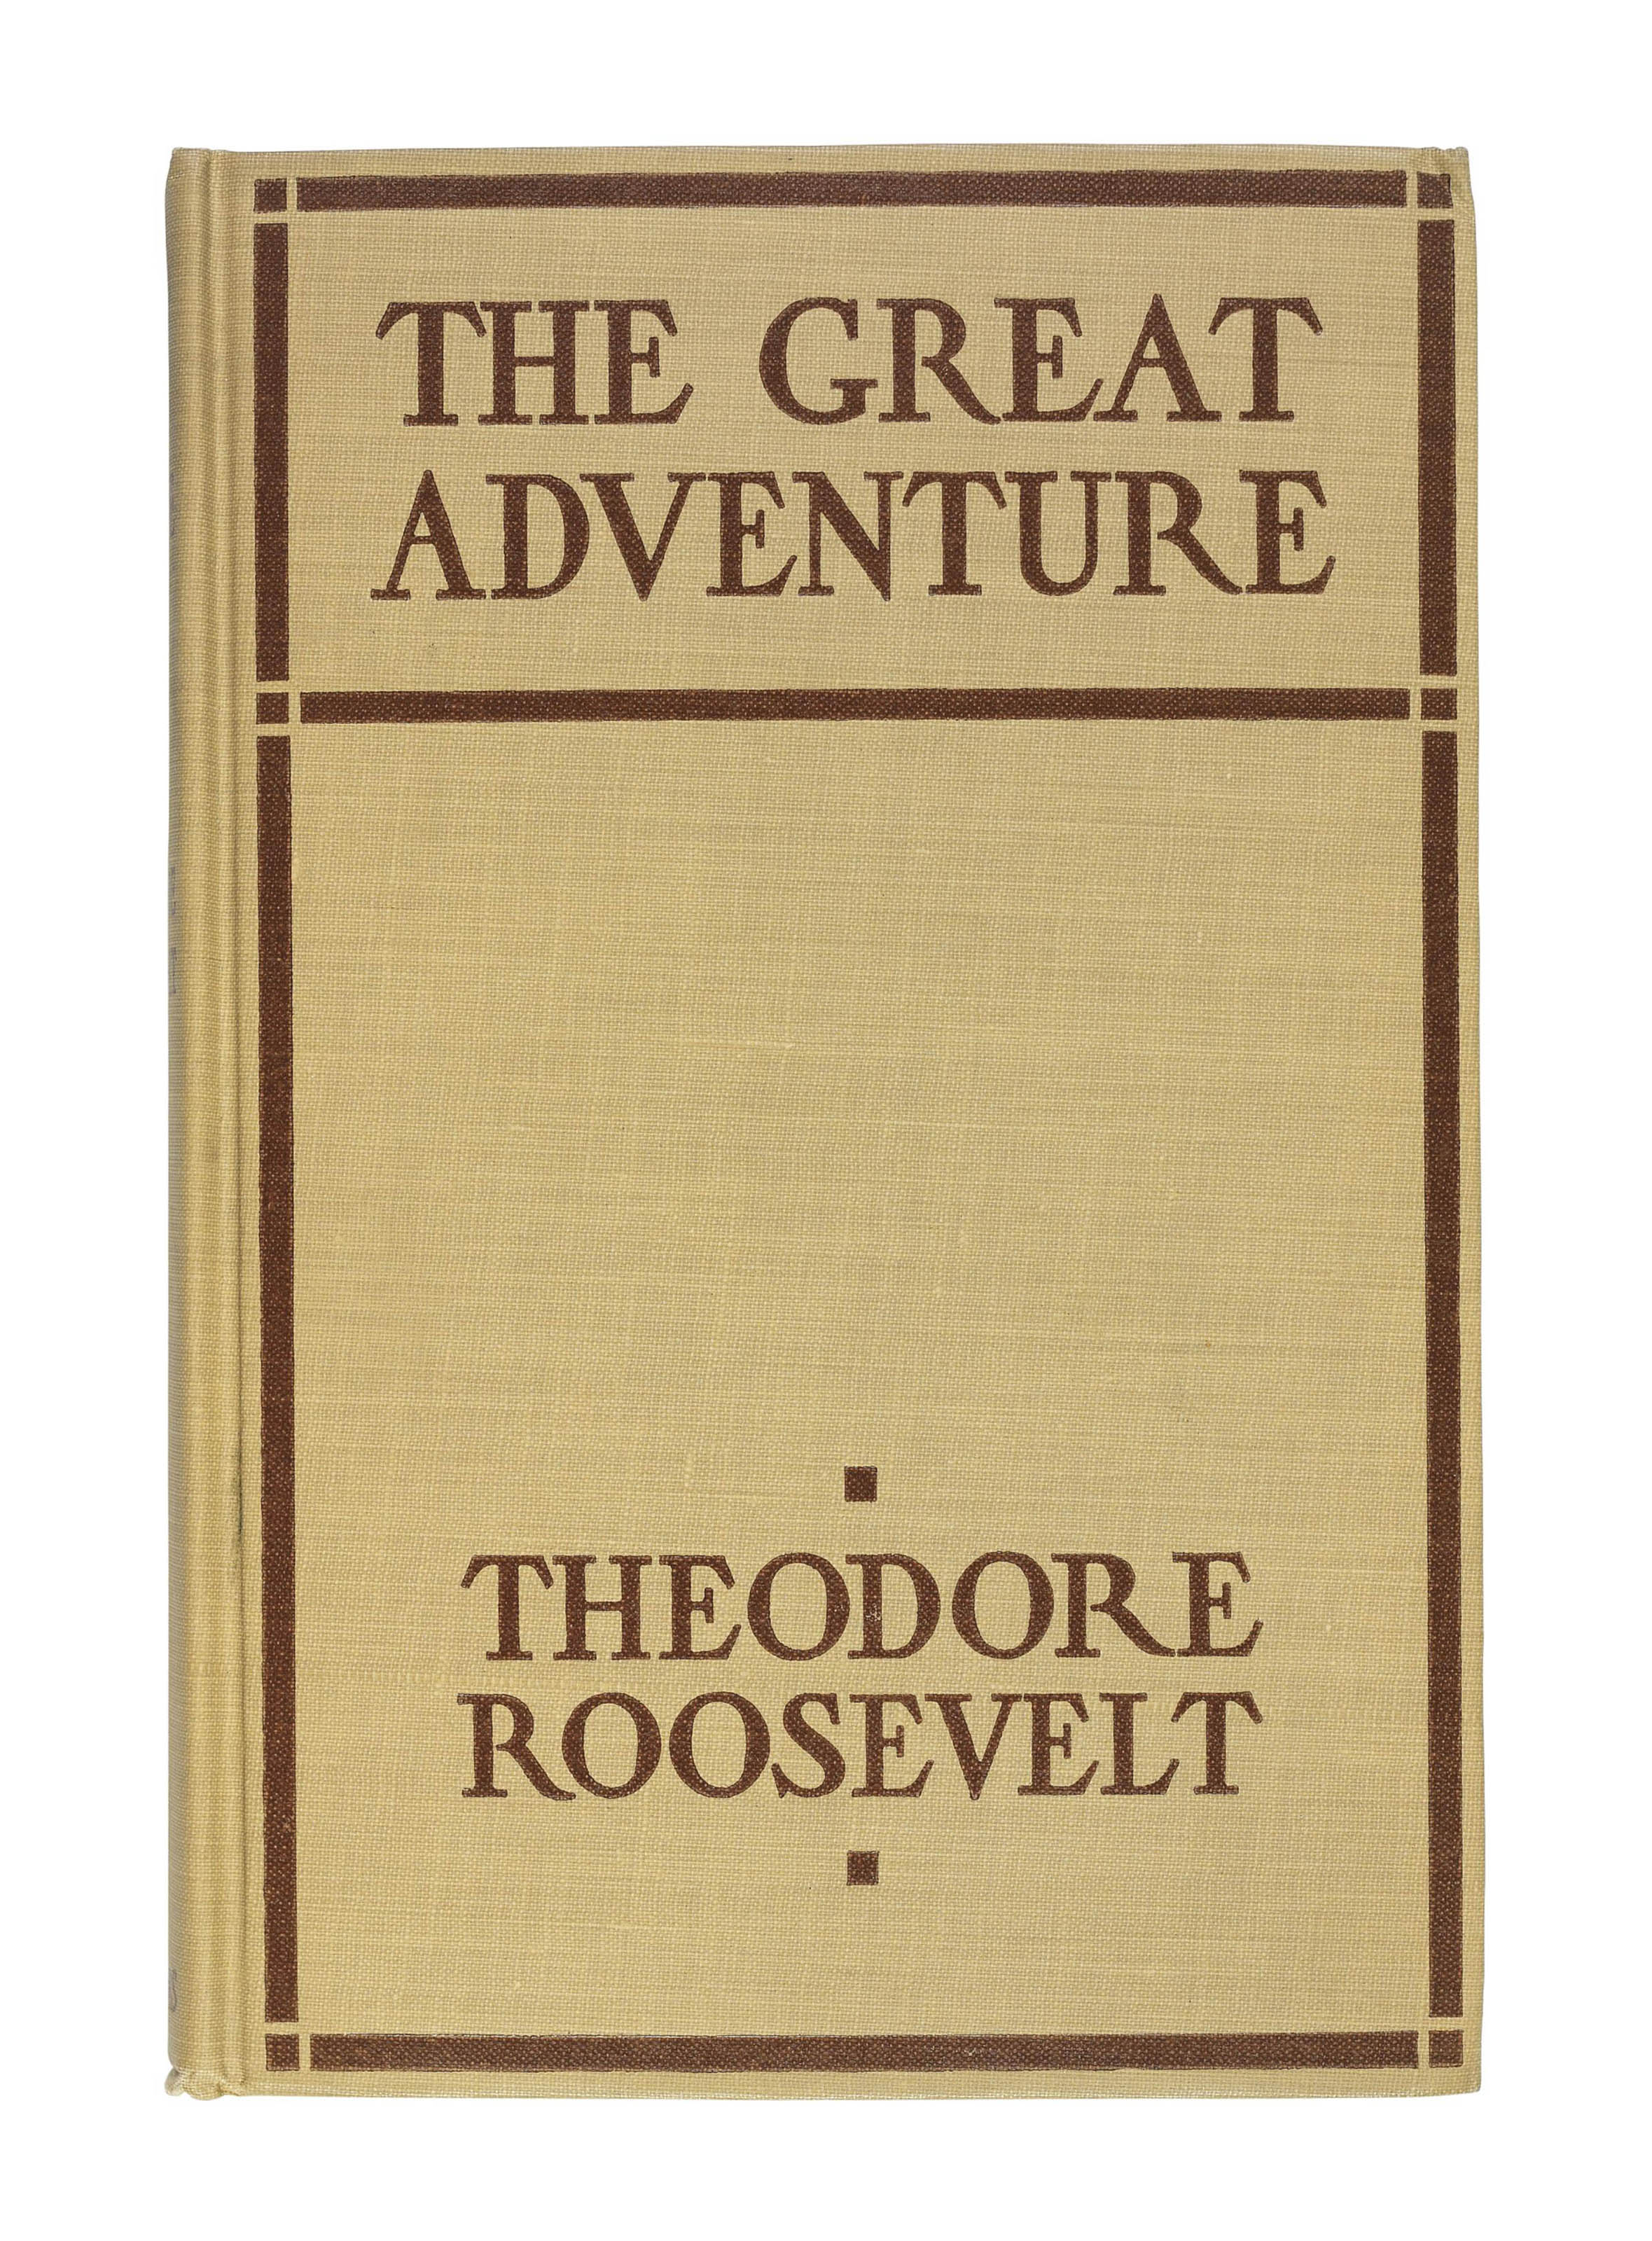 ROOSEVELT, Theodore (1850-1919). The Great Adventure. New York: Charles Scribner's Sons, 1918. 8° (187 x 130mm). Frontispiece portrait. Original beige cloth lettered in brown, original beige dust-jacket (a few tiny tears to dust-jacket, top extremity lightly rubbed). Provenance: William D. Vincent (presentation inscription from the author and book label).